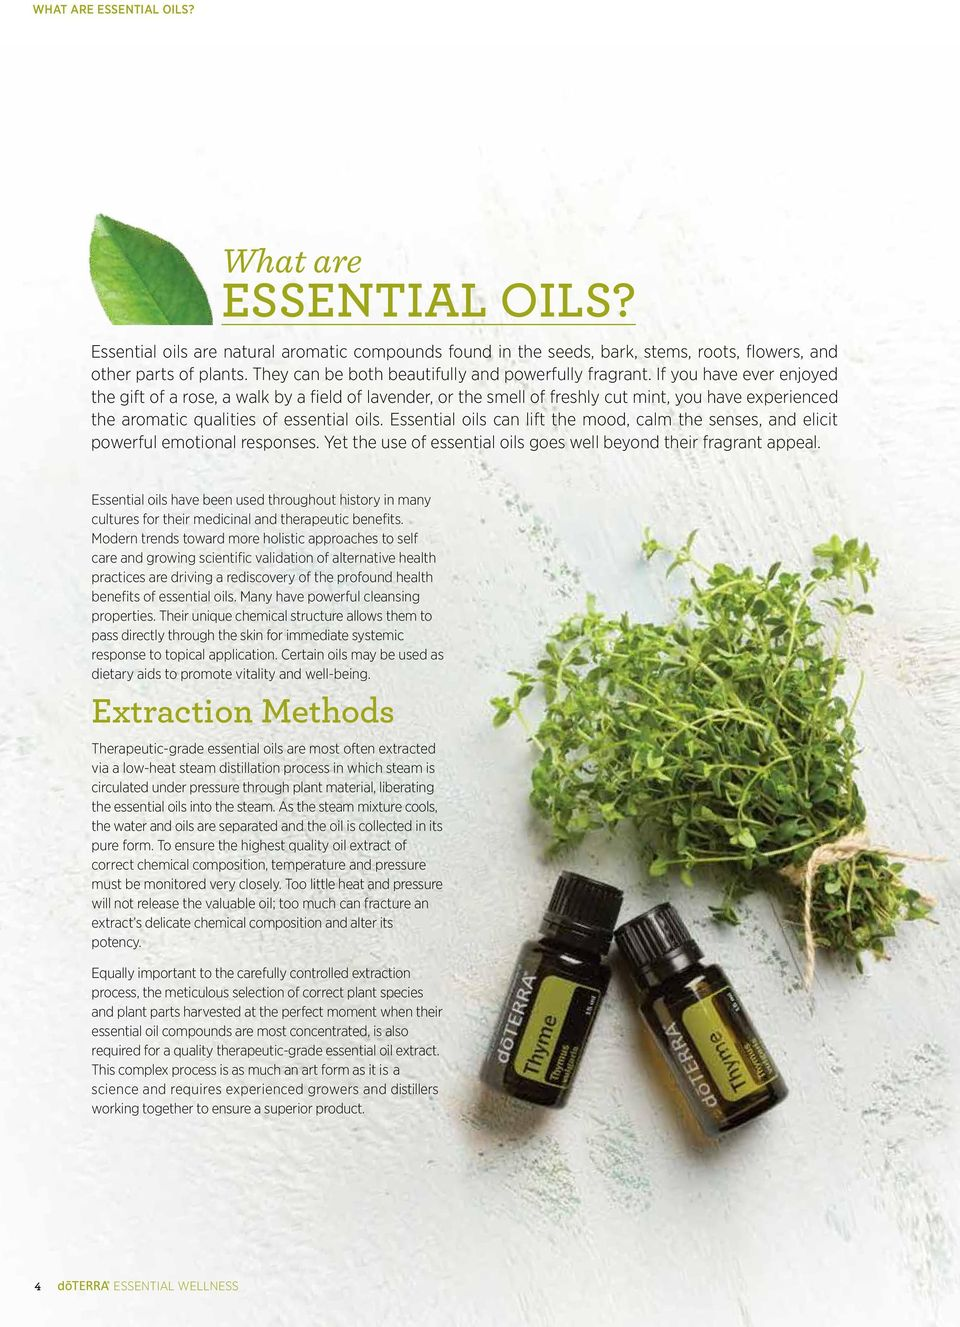 Essential oils can lift the mood, calm the senses, and elicit powerful emotional responses. Yet the use of essential oils goes well beyond their fragrant appeal.